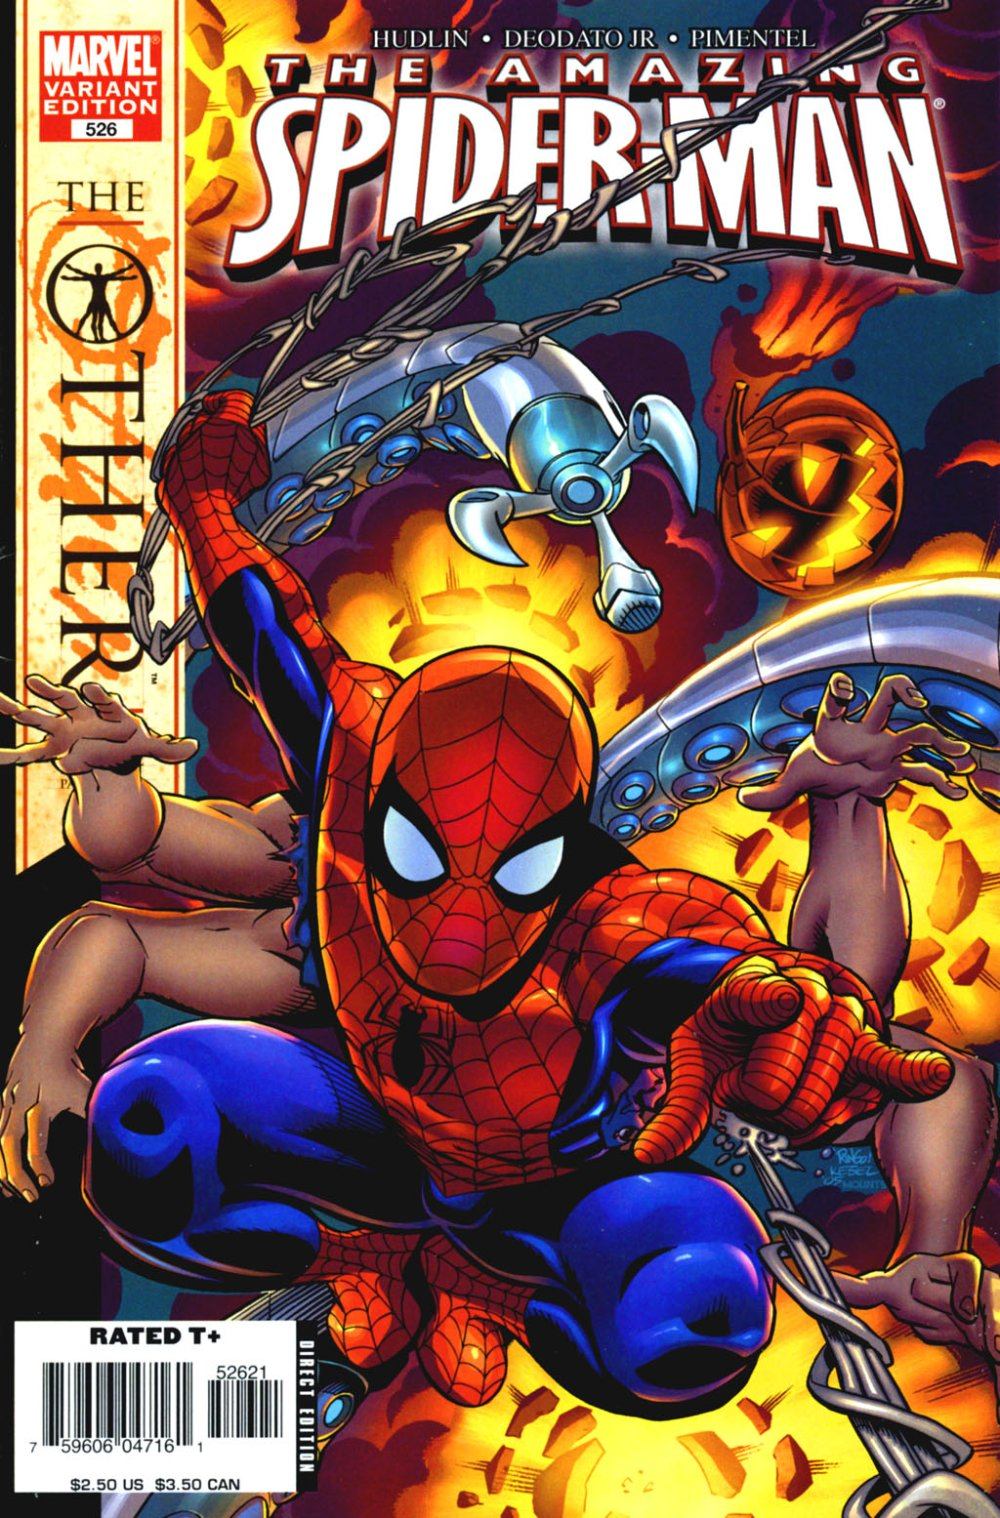 Amazing Spider-Man 0526a.jpg